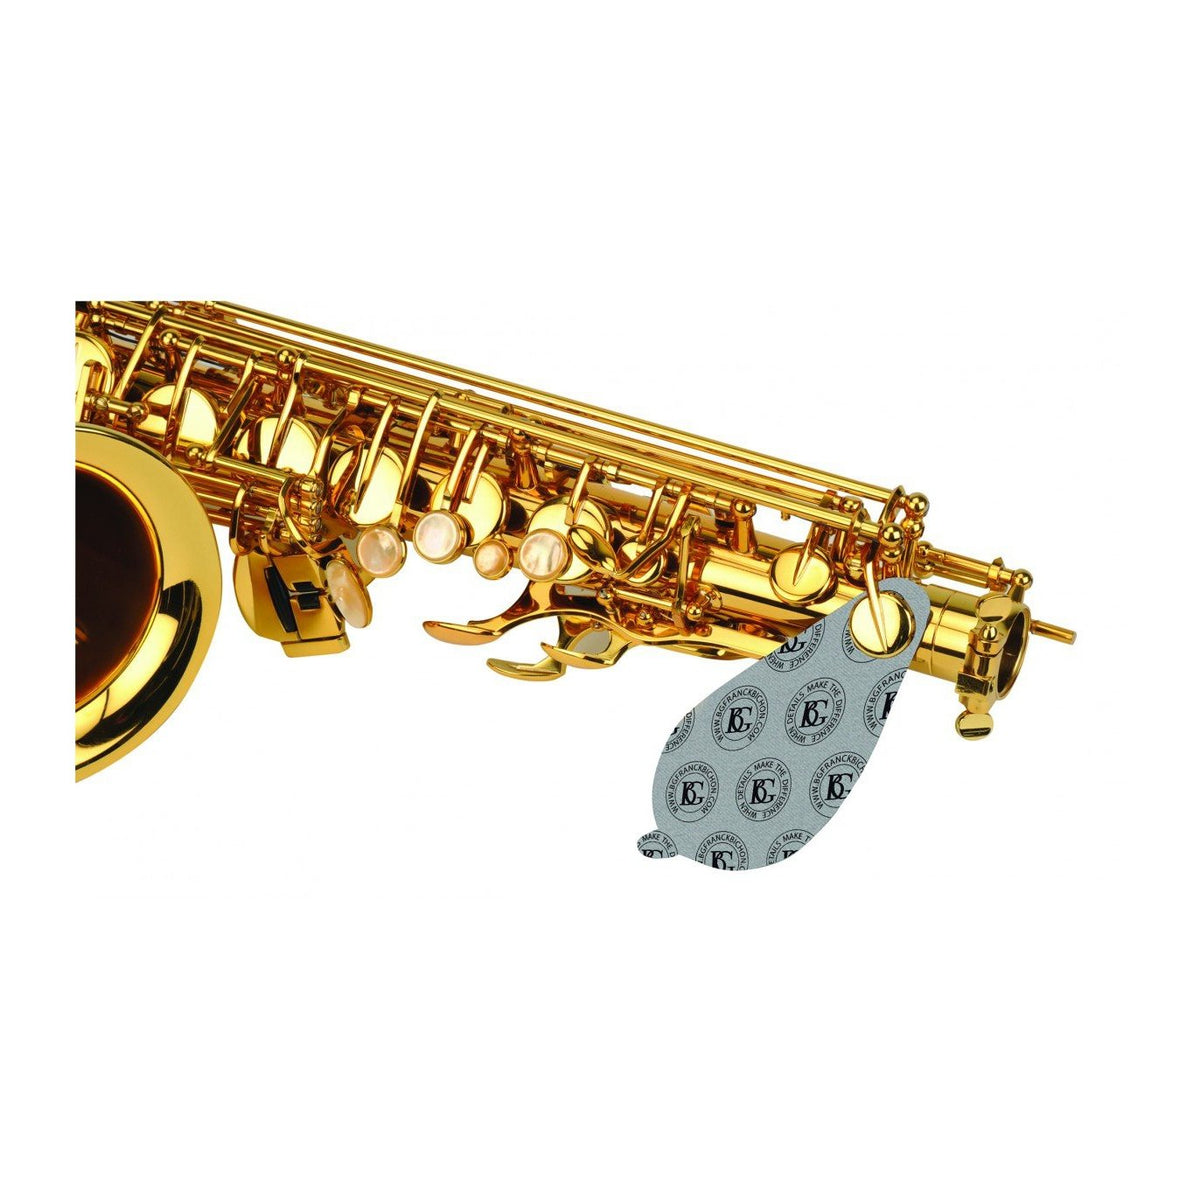 BG France - Microfiber Pad Dryer for Saxophones-Accessories-BG France-Music Elements